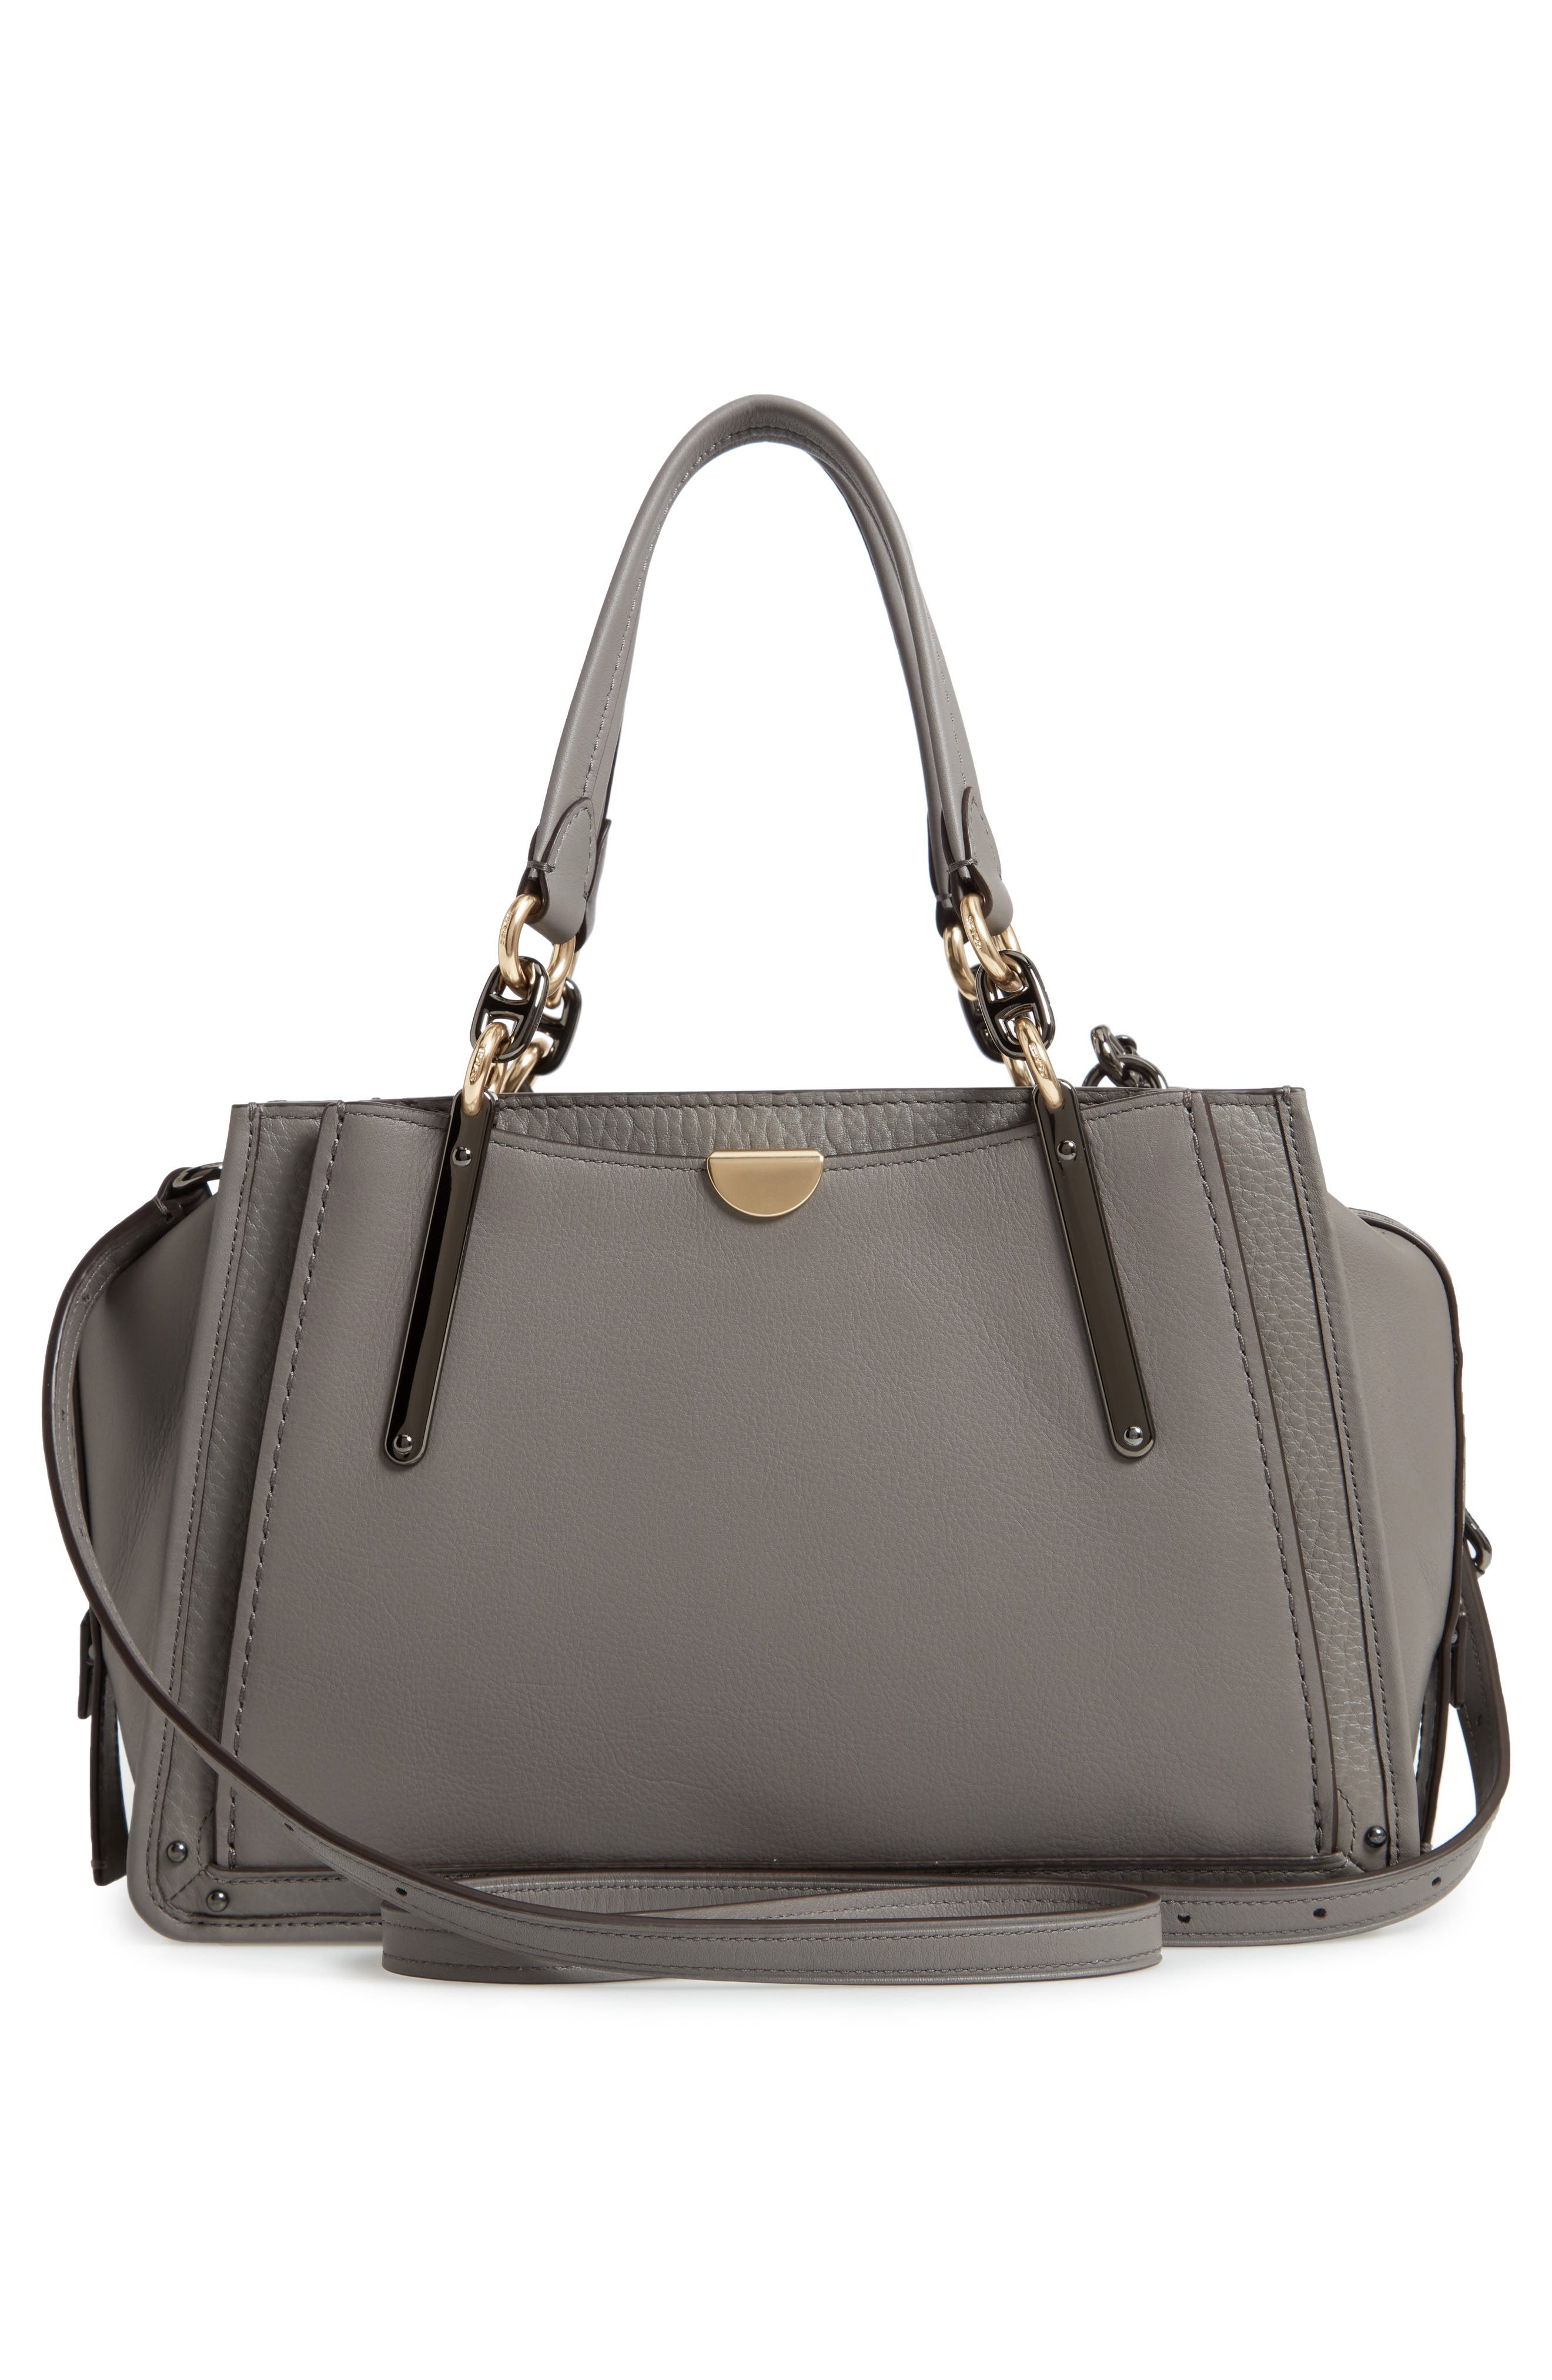 COACH, Dreamer Mixed Leather Bag, Alternate thumbnail 3, color, HEATHER GREY